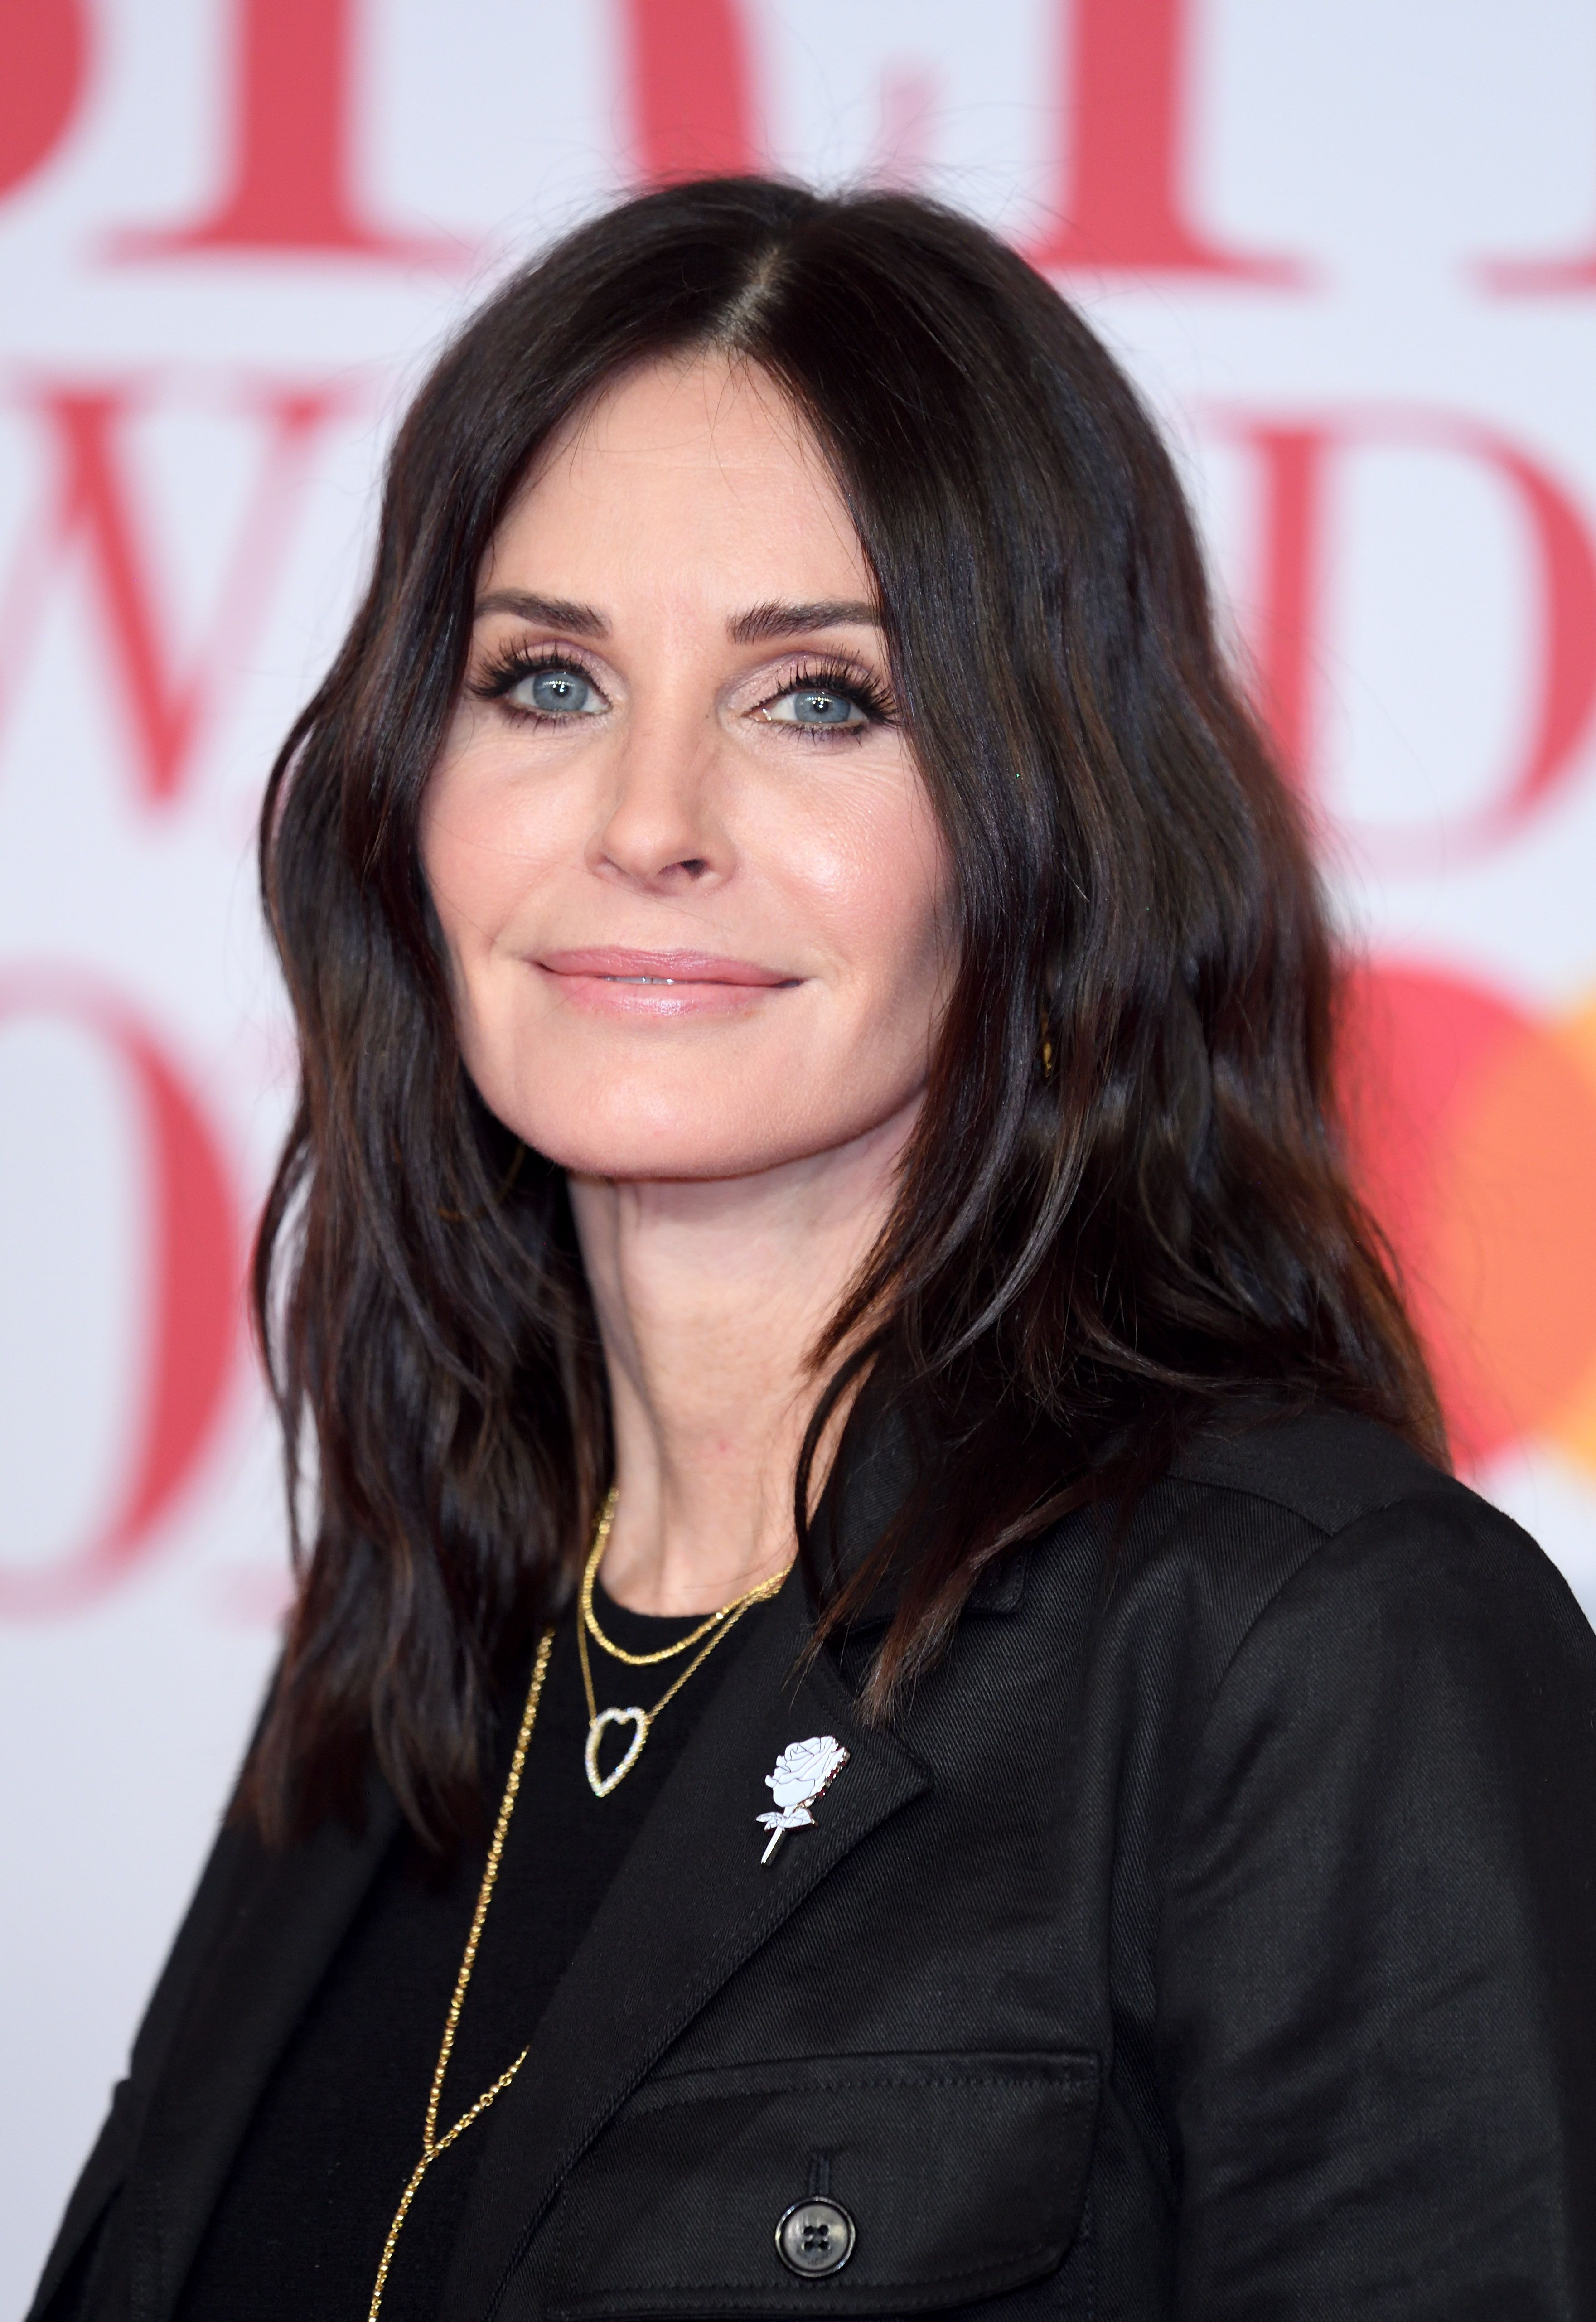 Courtney Cox's new '90s fringe is giving us Friends feels